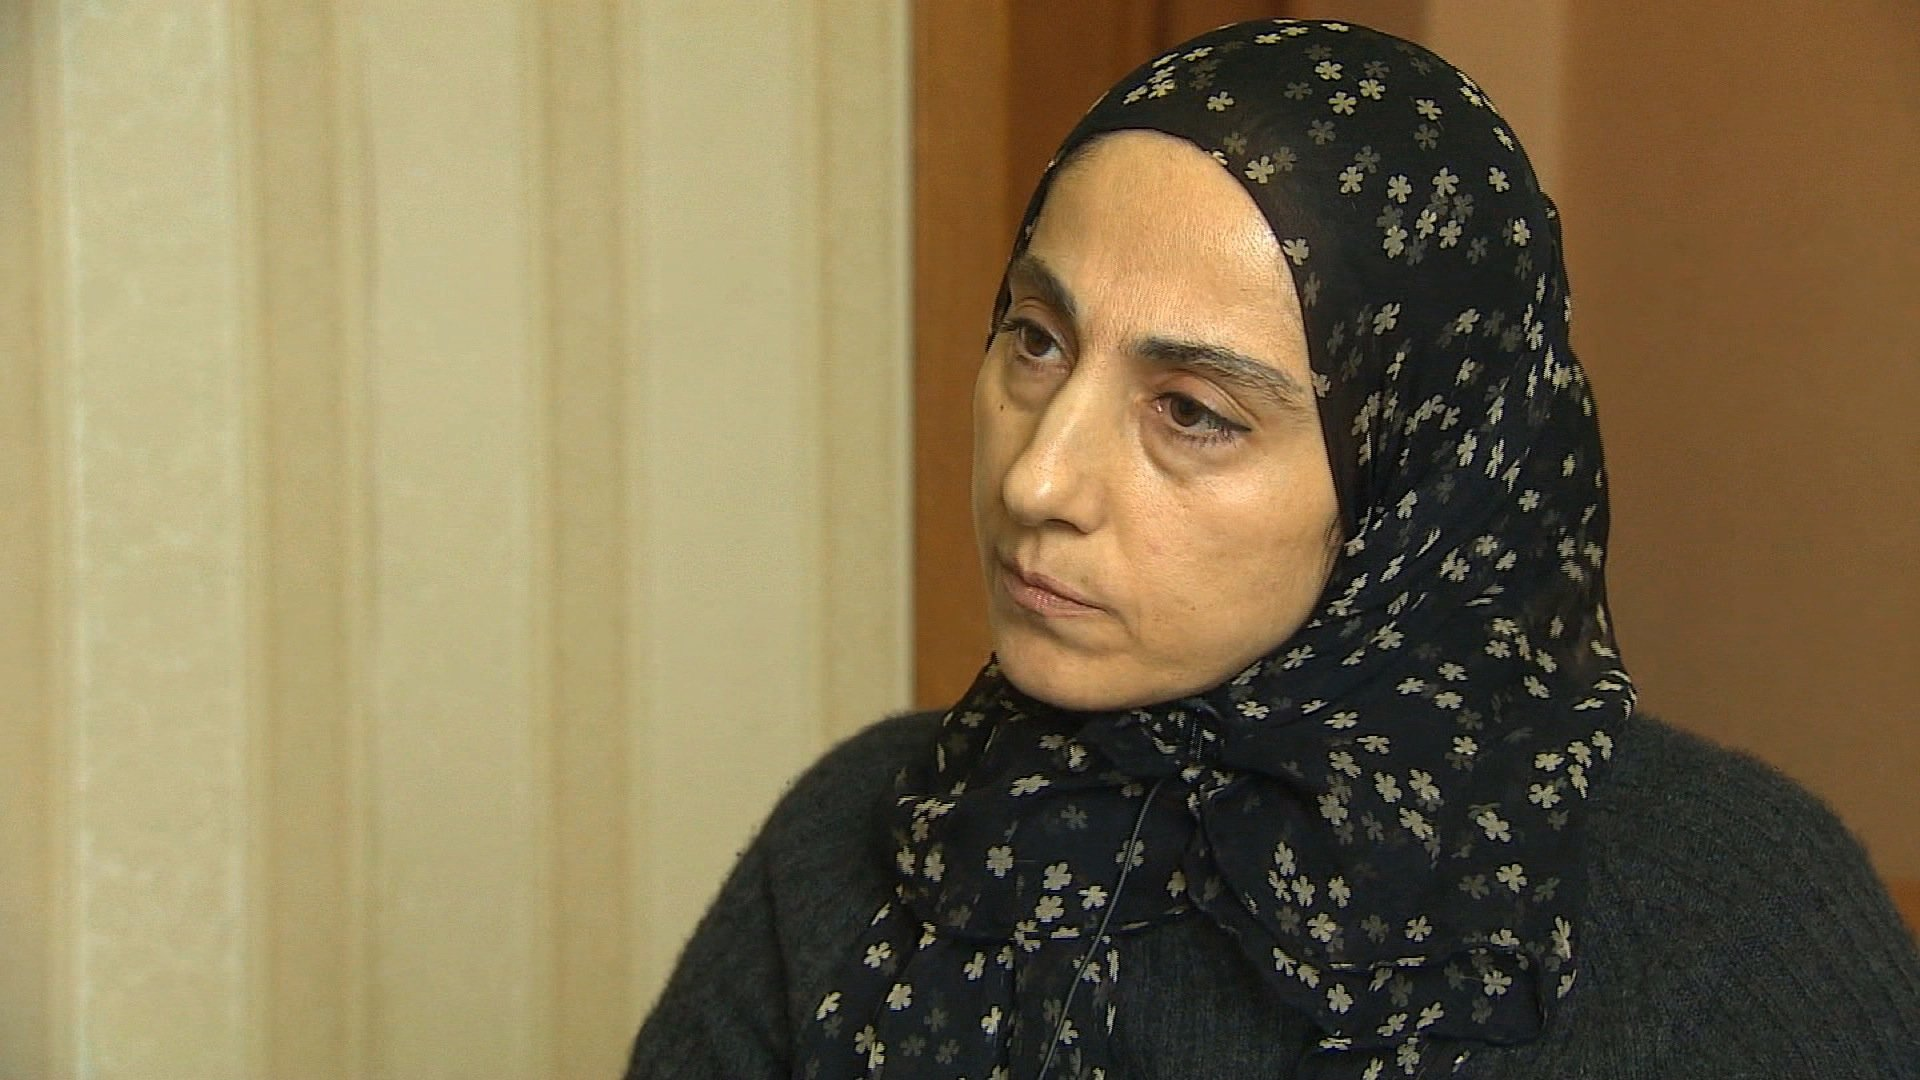 "Russia intercepted a communication between Zubeidat Tsarnaev, the mother of the accused Boston Marathon bombers, and someone who may have been one of her sons ""discussing jihad"" in 2011. (credit: CNN)"